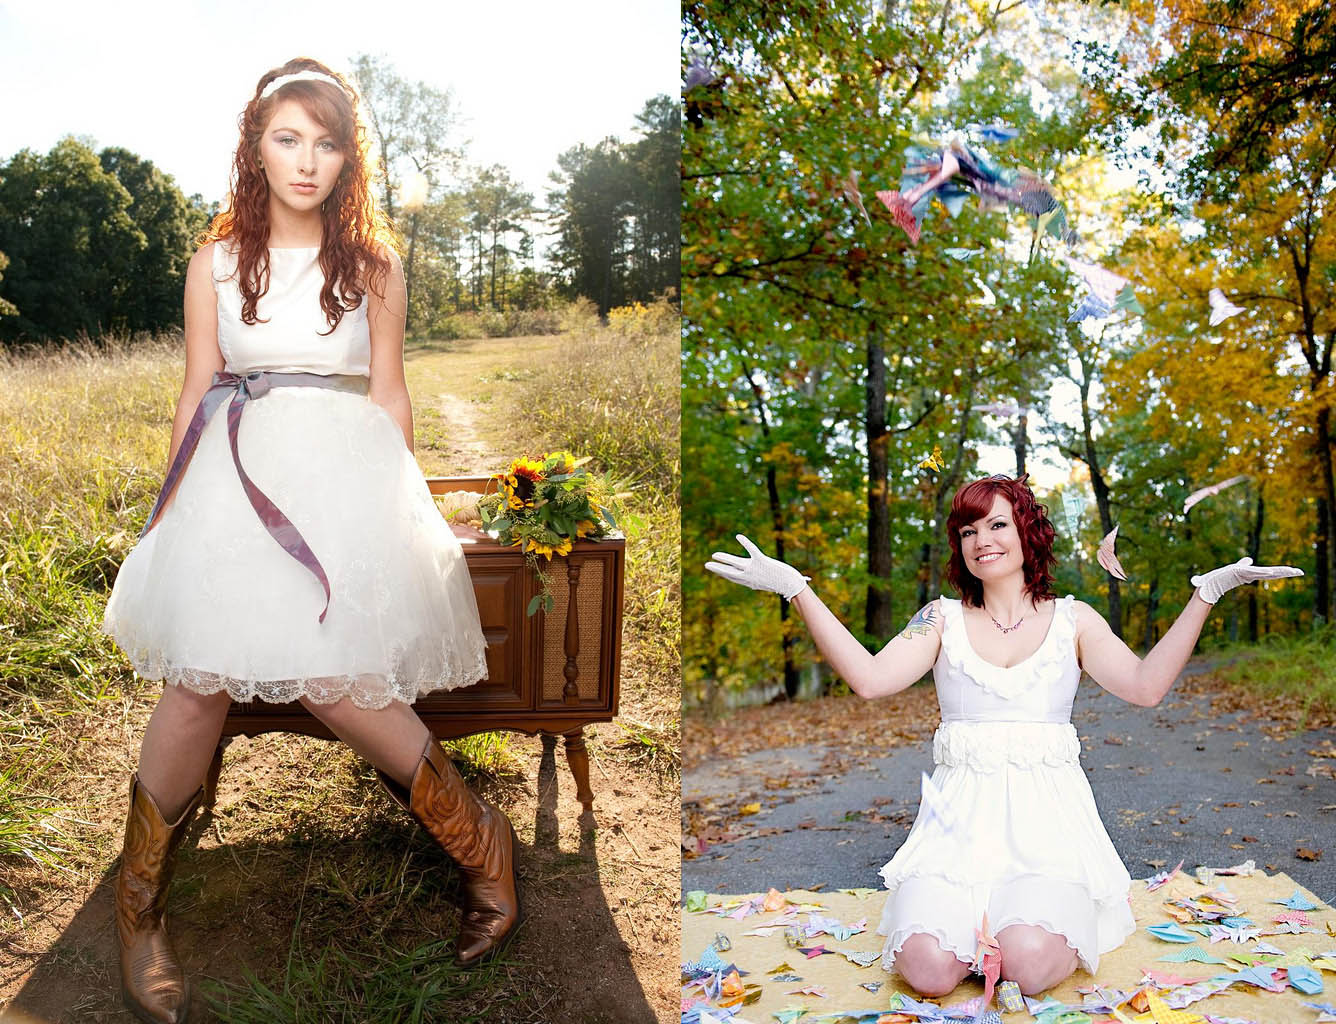 Win a custom wedding gown from knot couture rock n roll for Win free wedding dress